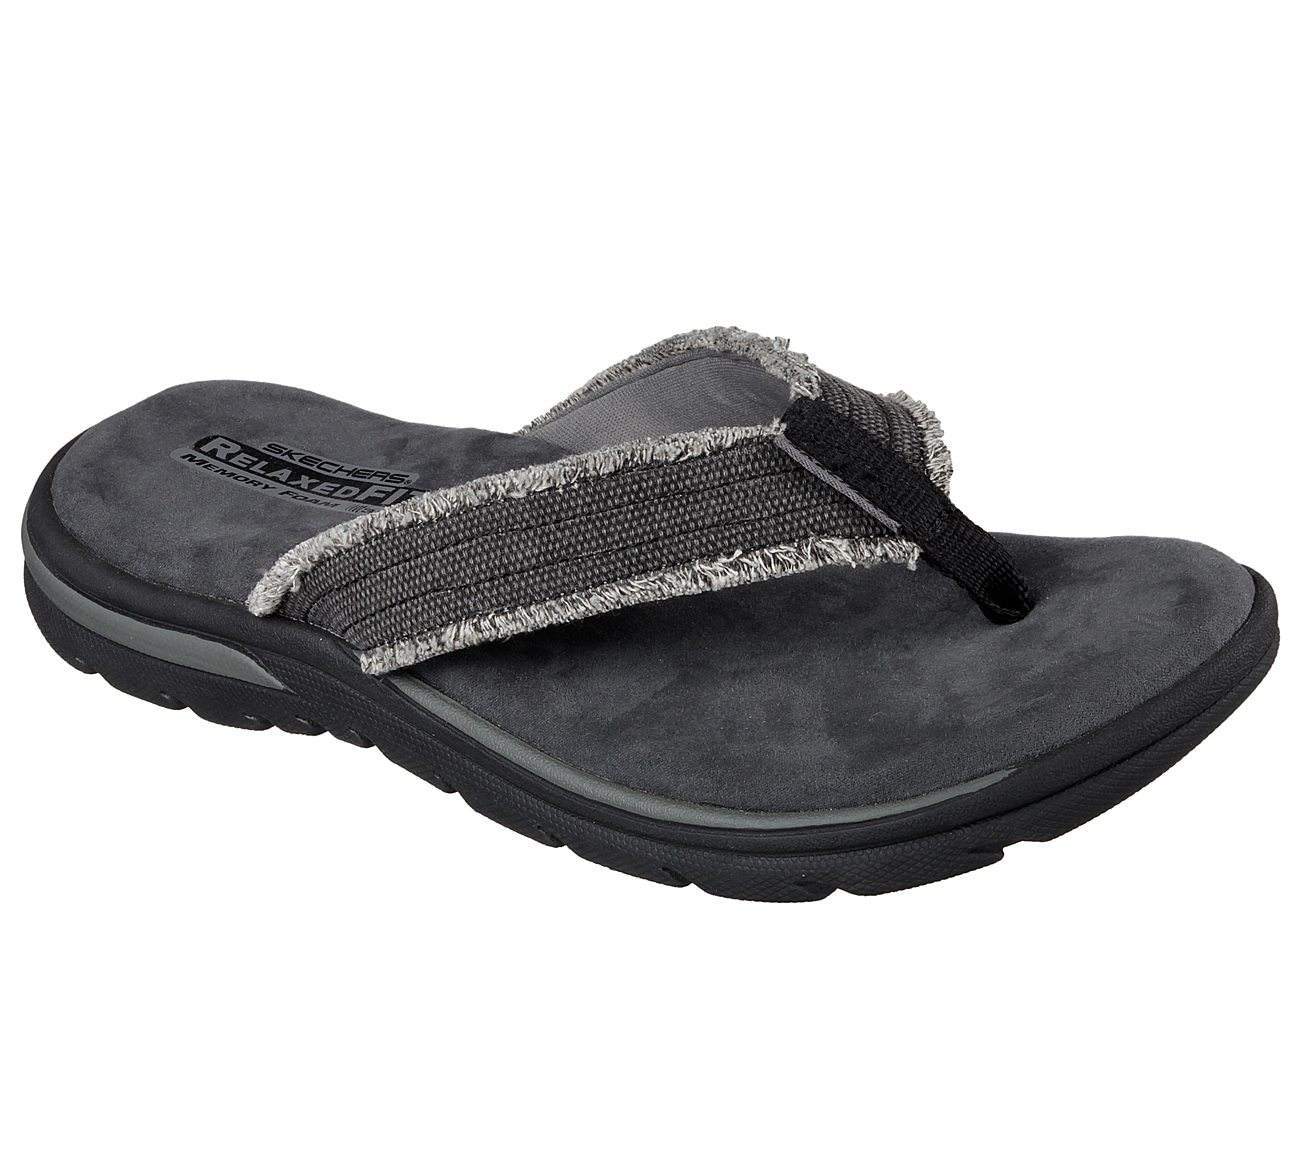 Women's Skechers relaxed fit memory foam. Size 9 navy comfort cushion work